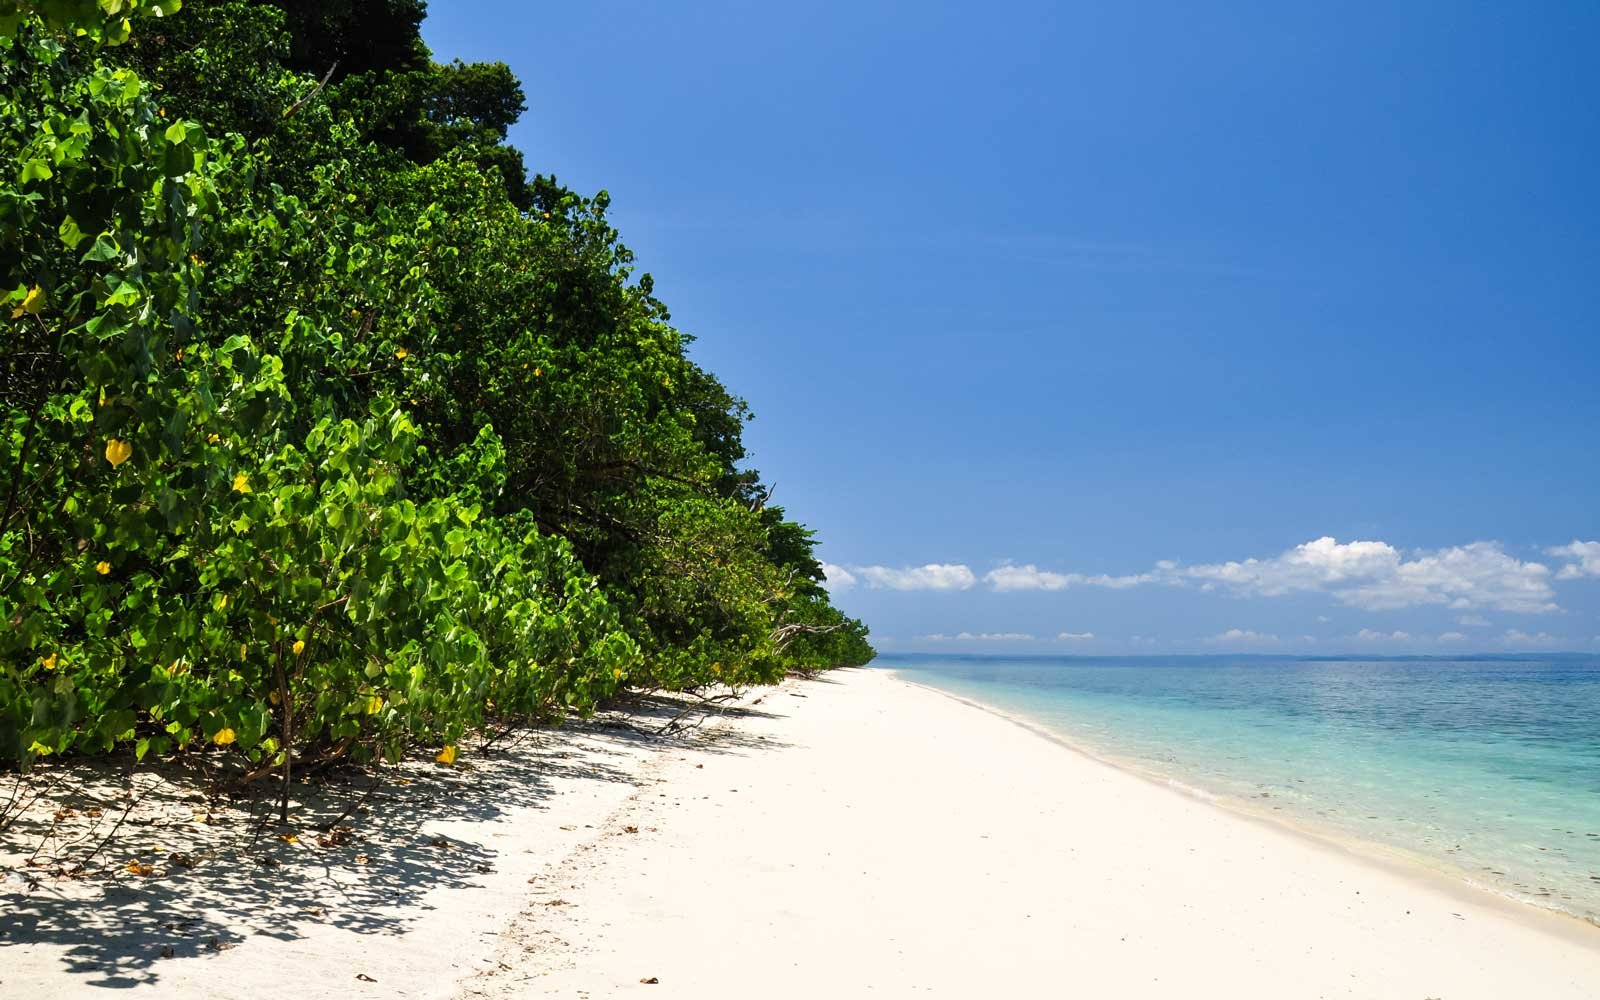 Stunning view of Elephant Beach on Havelock Island.